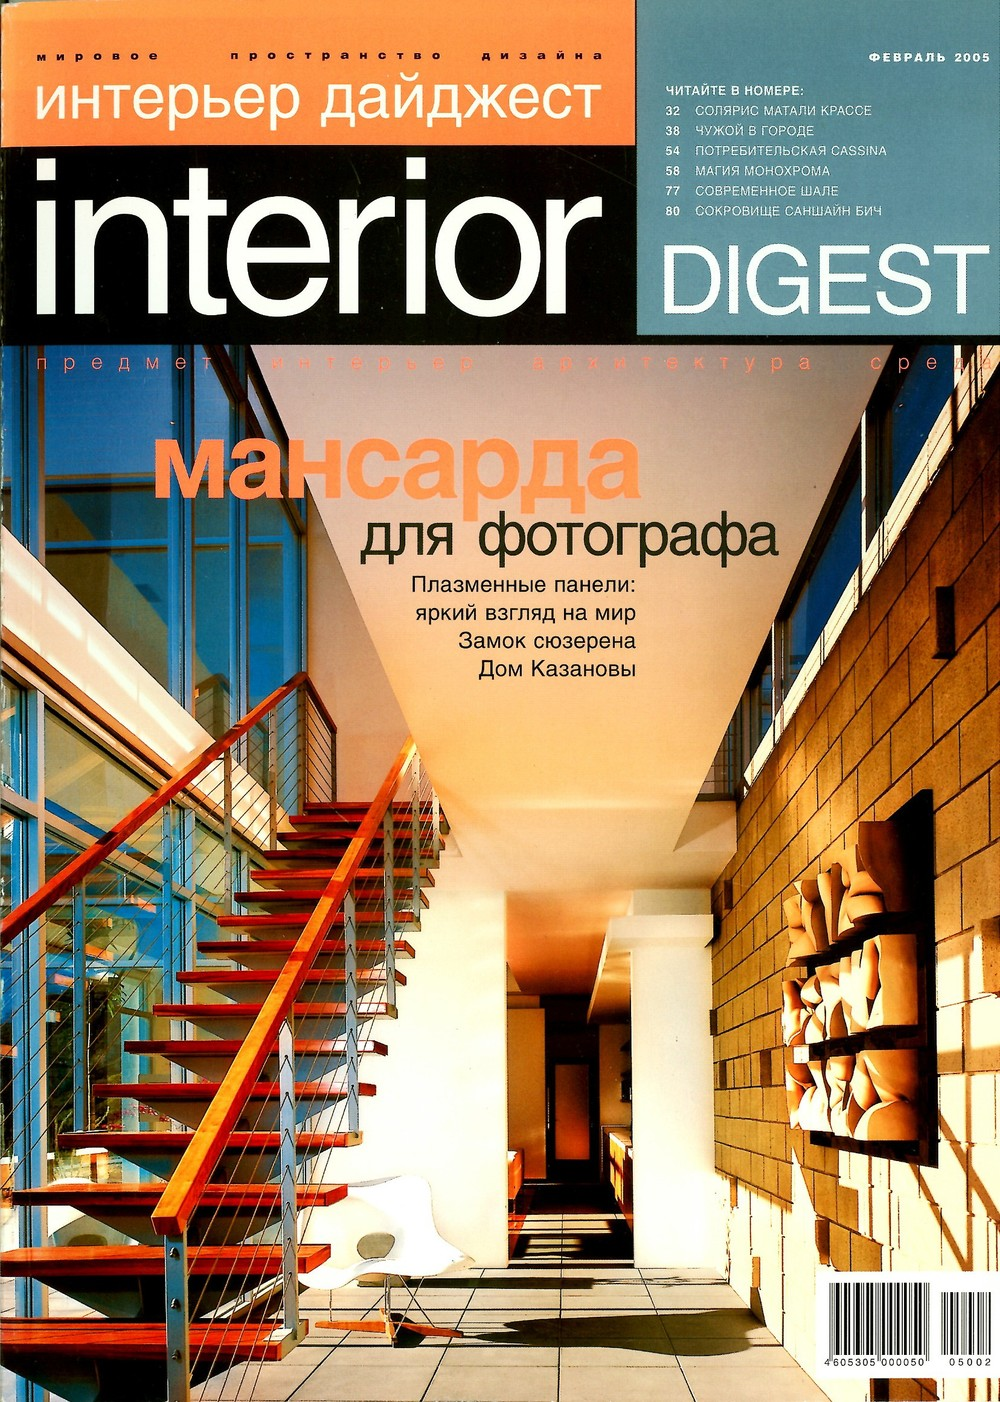 Russian_Interior Digest 2005.jpg